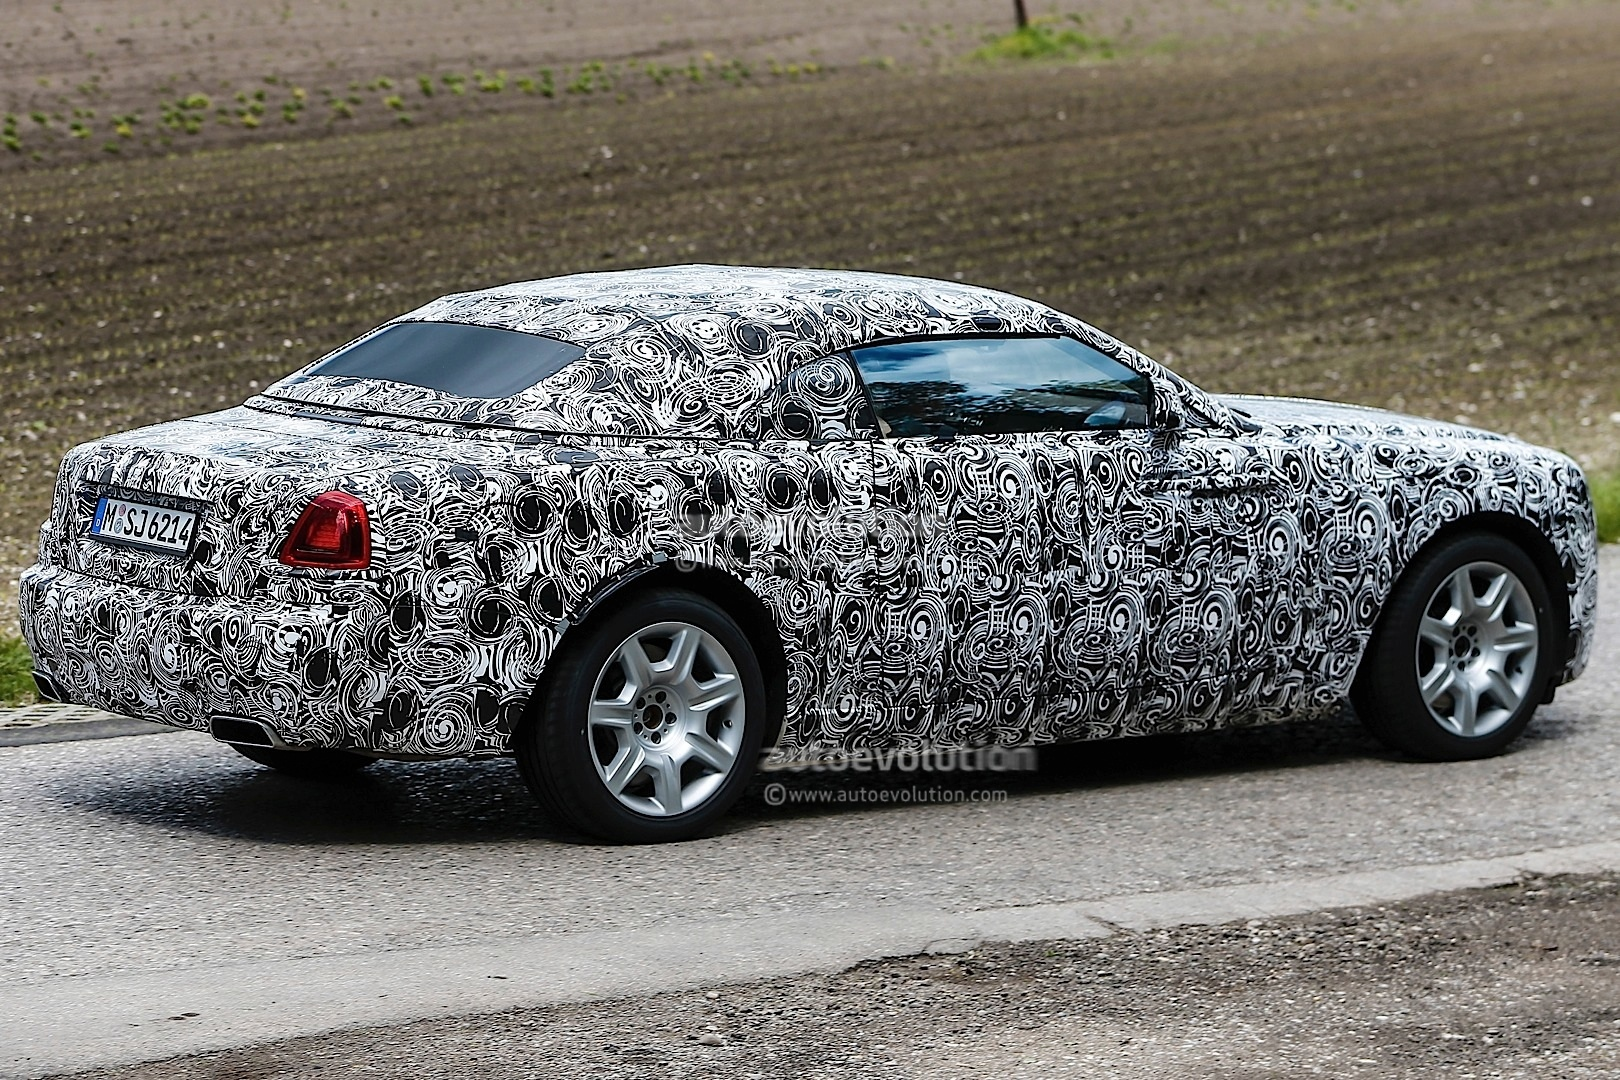 Cadillac Ats Coupe >> Rolls-Royce Spied Testing Wraith Drophead Coupe - autoevolution